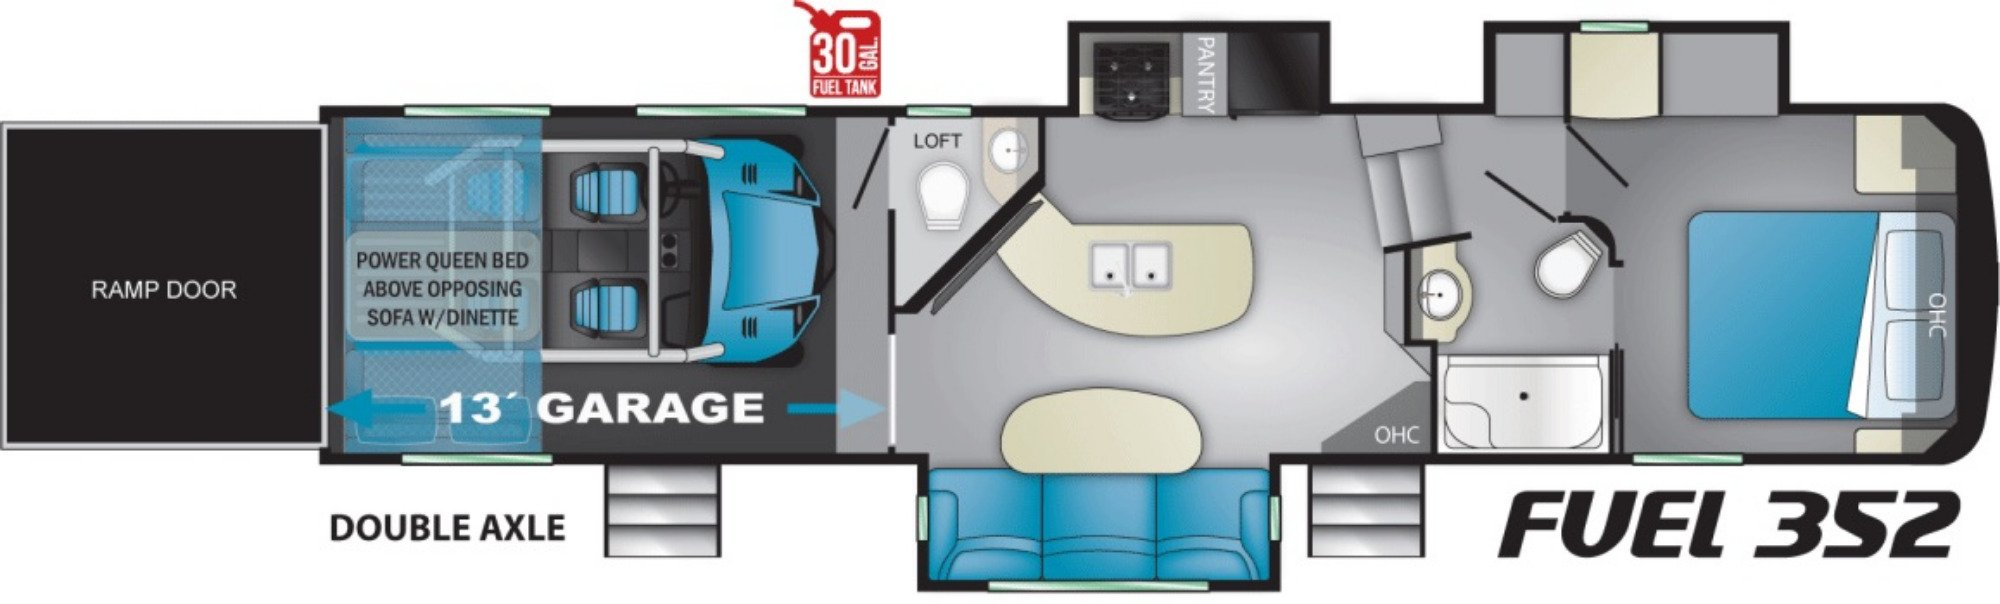 View Floor Plan for 2021 HEARTLAND FUEL 352